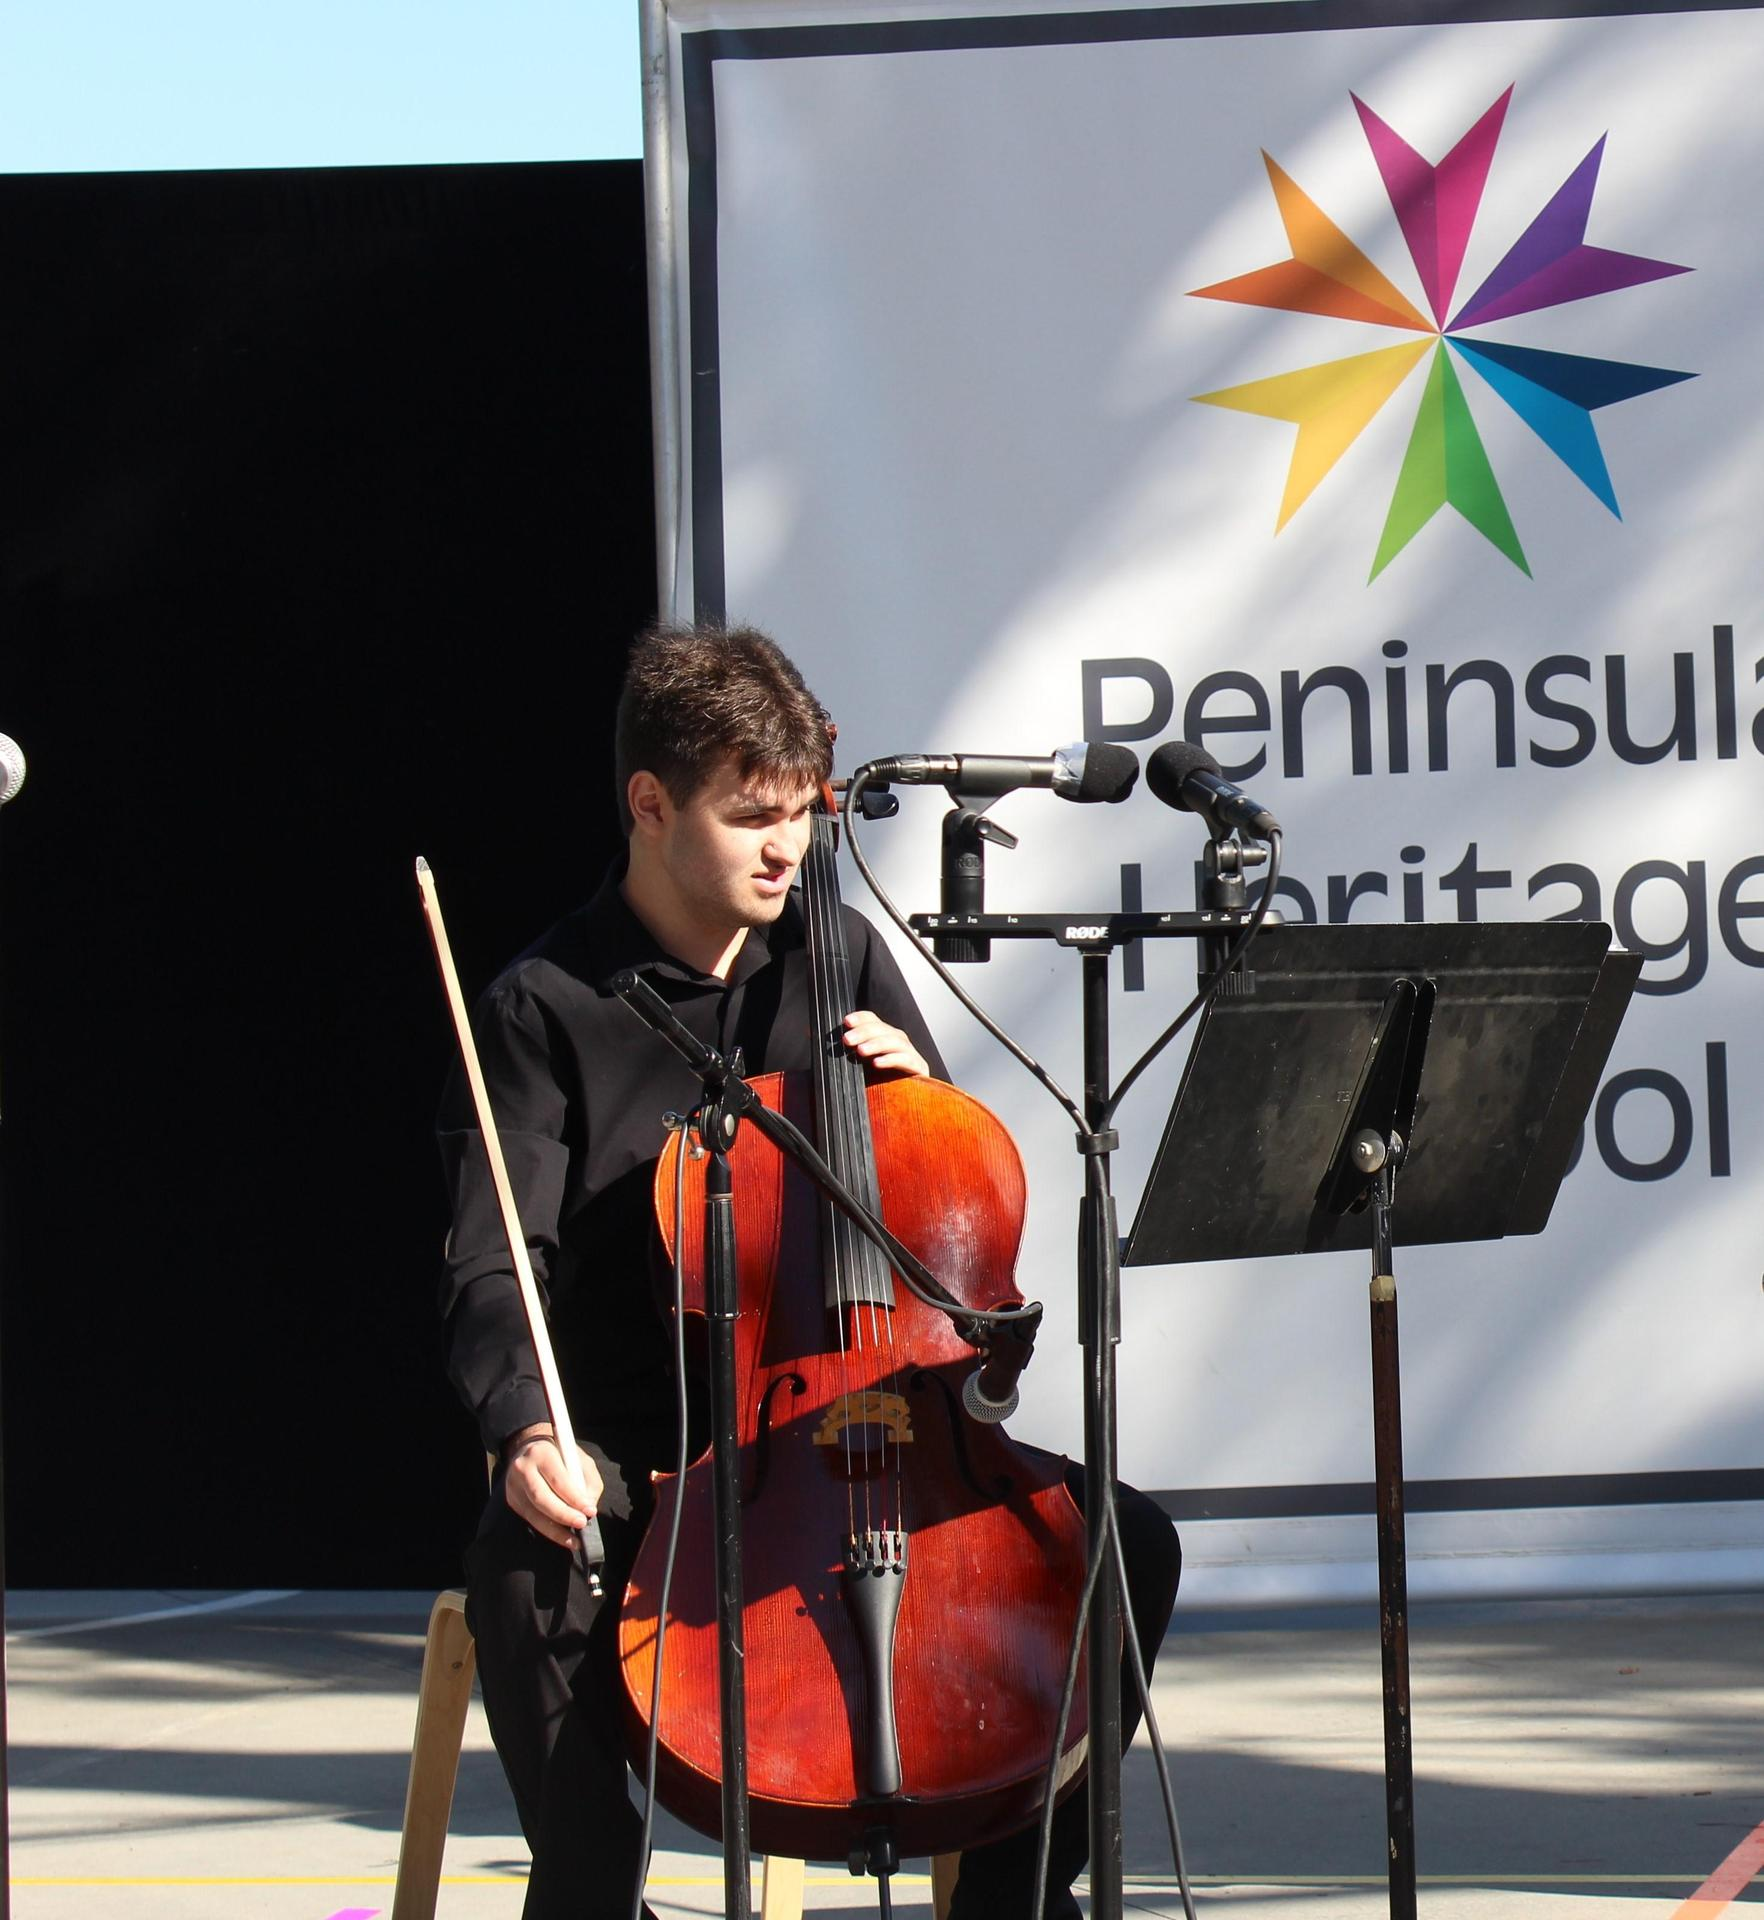 Aaron Playing Cello